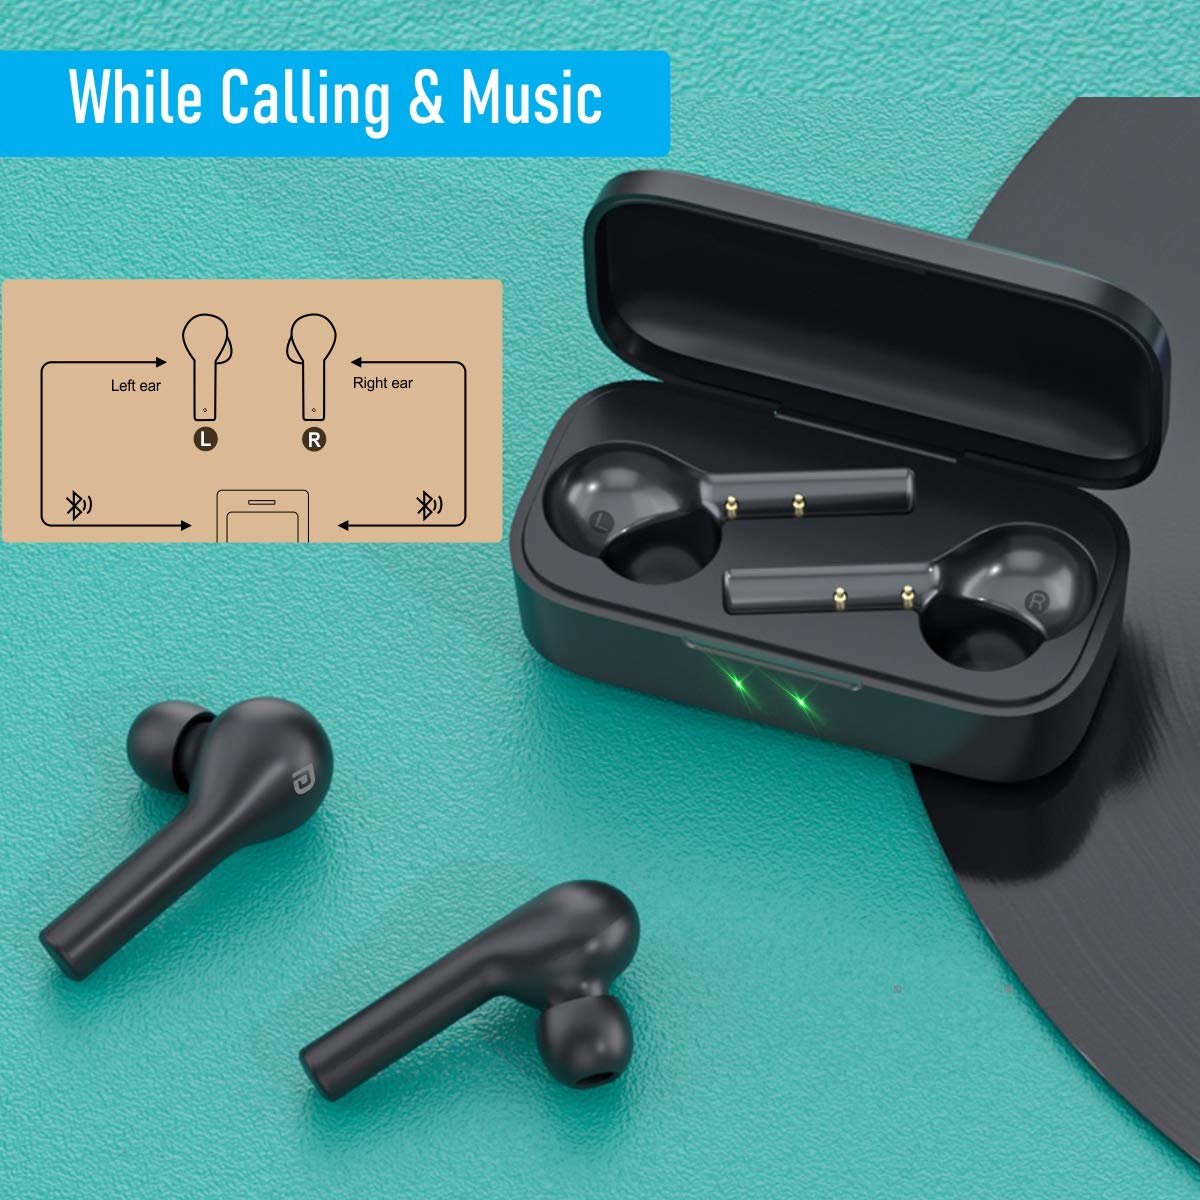 Portronics Harmonics Twins II POR-1050 a Small Sized HD True Wireless Stereo Earbuds with Extra Bass, LED Indicator, Bluetooth 5.0, One Touch Control, Noise Reduction, Support Game Mode, Black